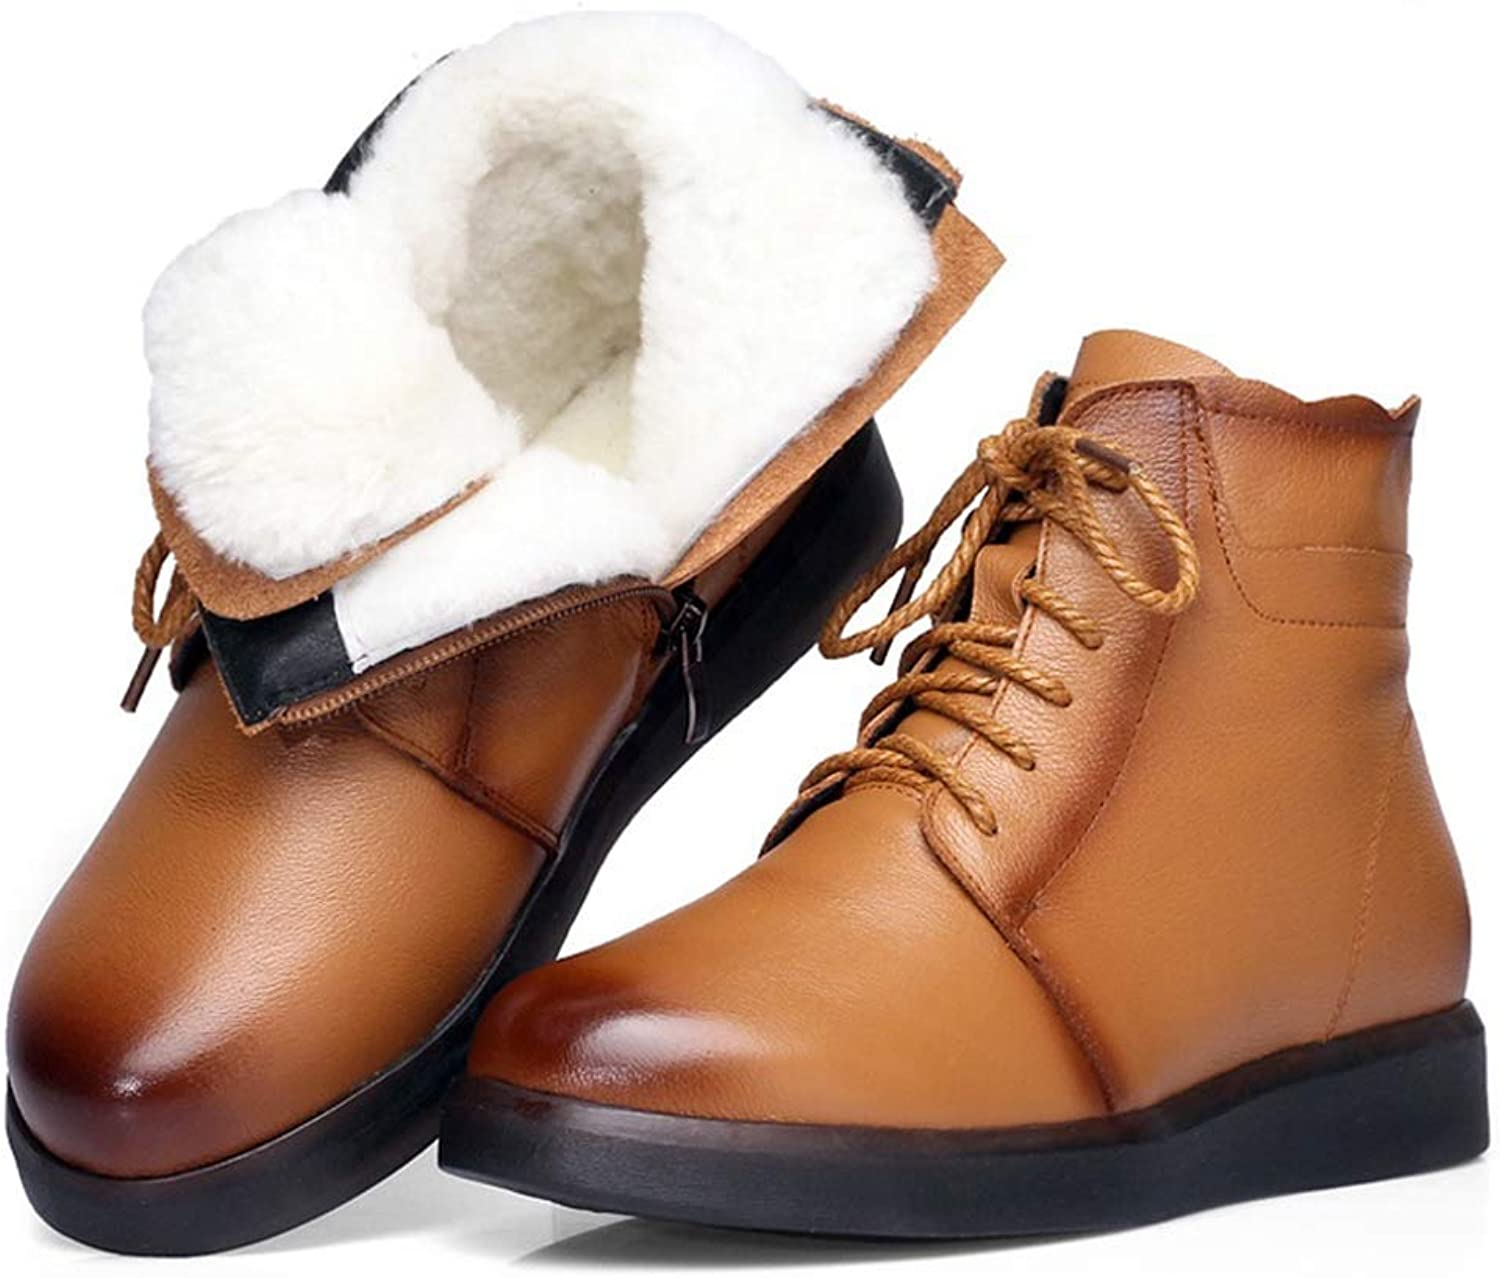 BMTH Women Lace Up Snow Boots Round Toe Warm Fur Lined Ankle Boots Cow Leather Flats Winter Ankle Boots